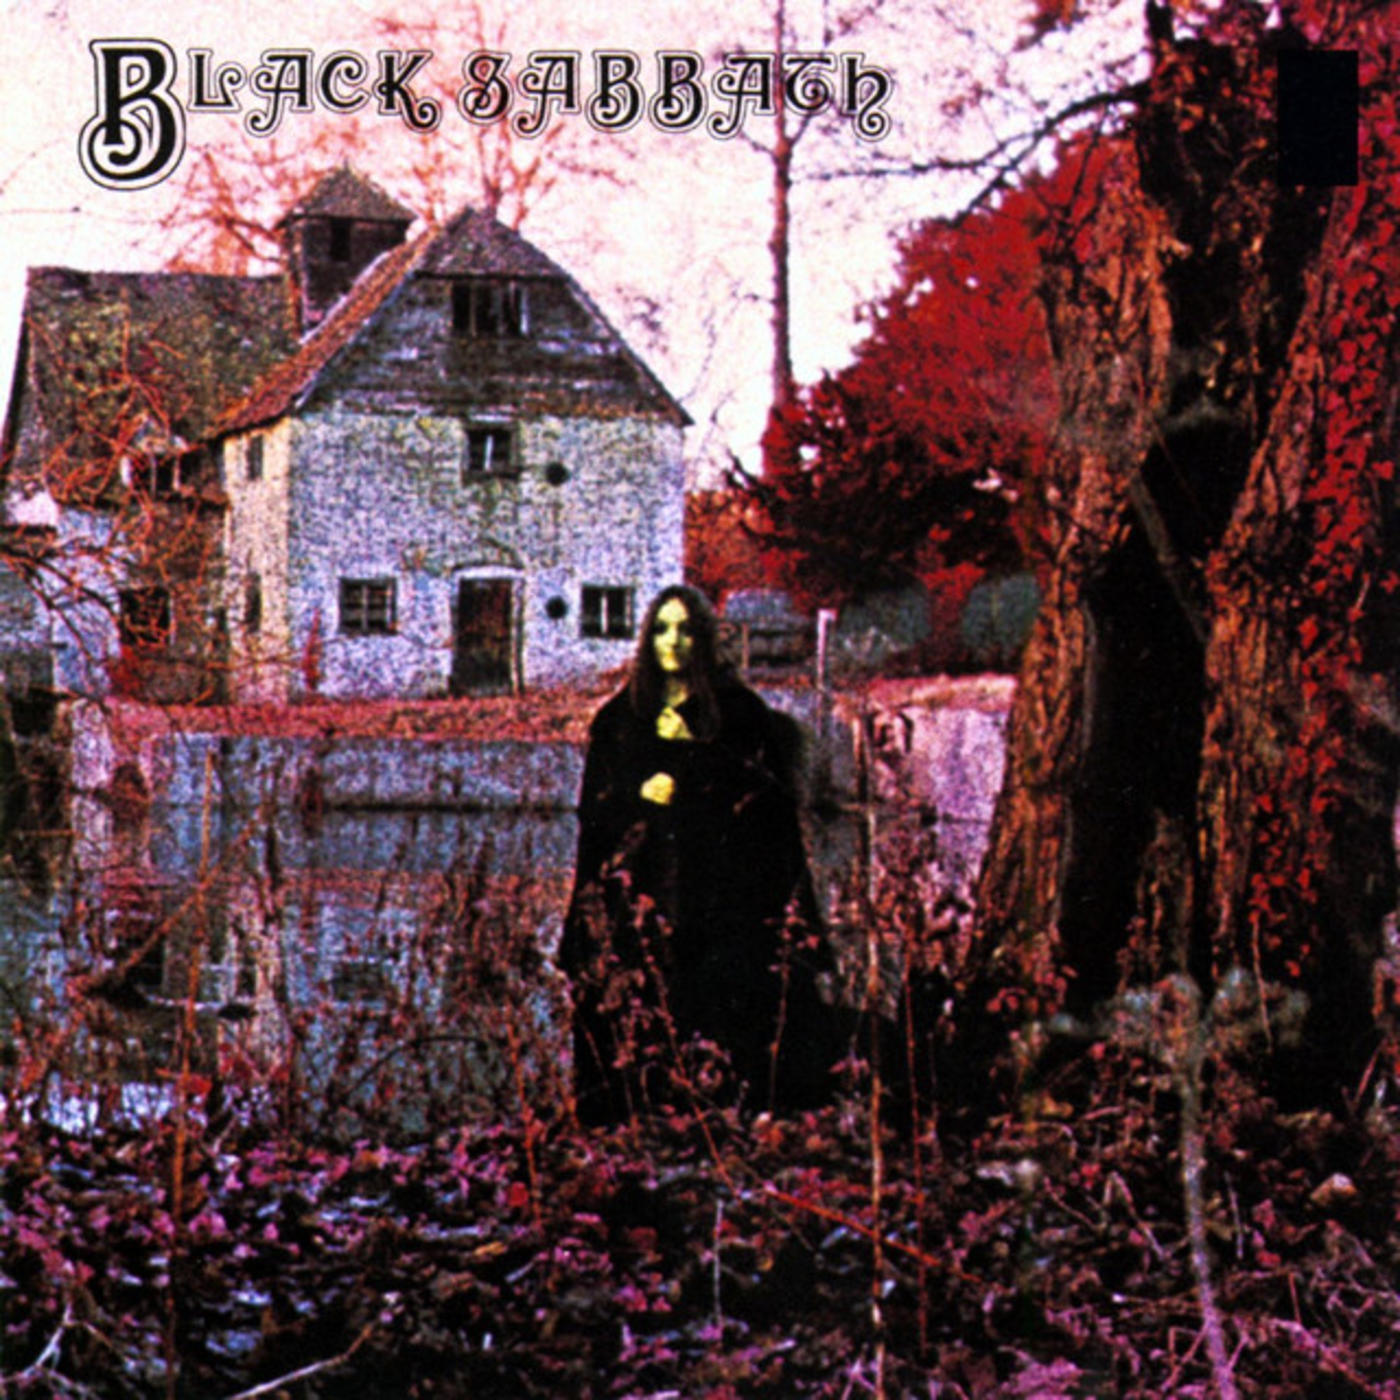 Black Sabbath Playlist